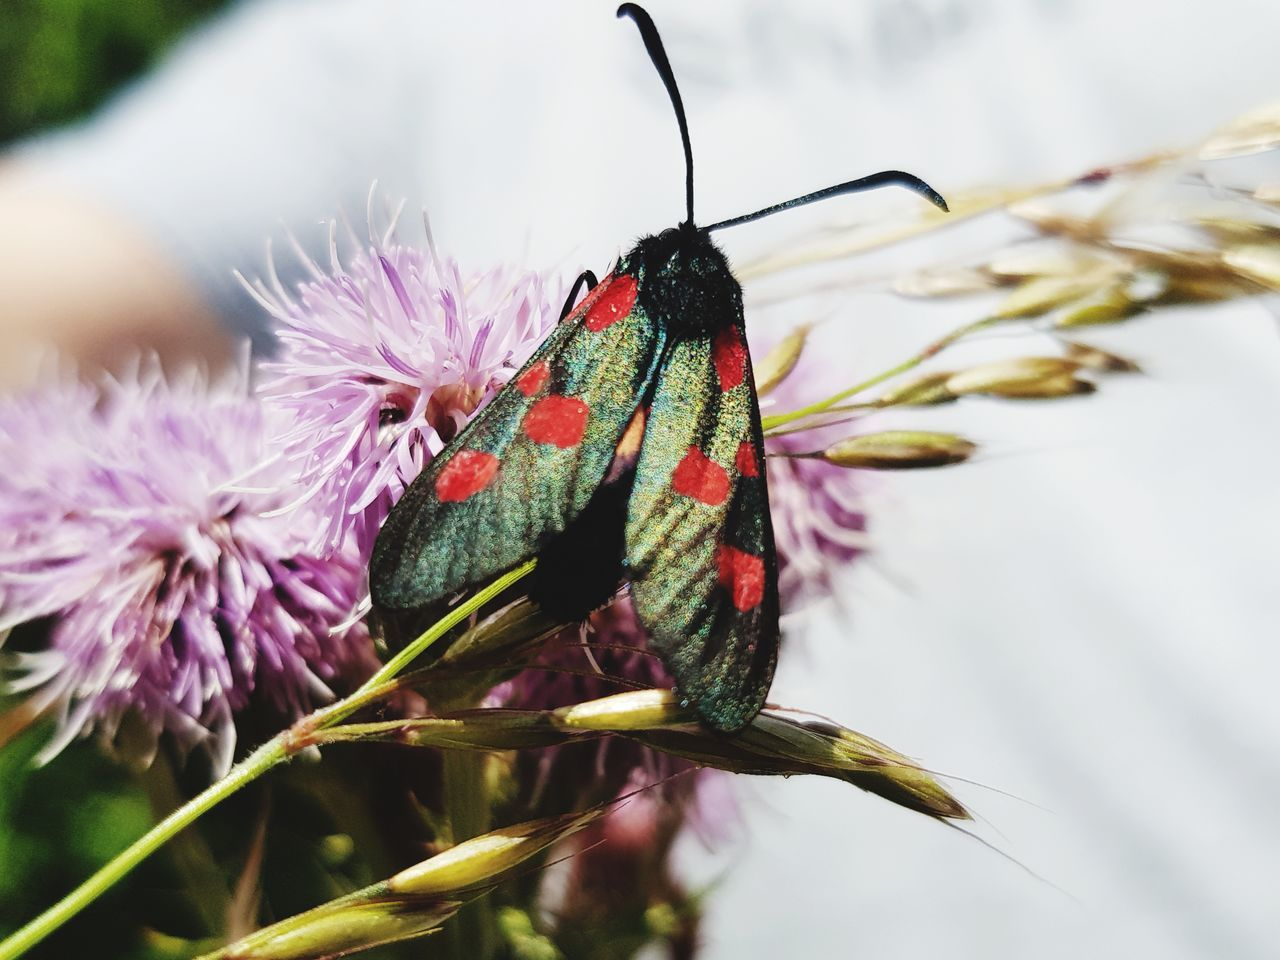 insect, animals in the wild, animal themes, one animal, flower, nature, close-up, beauty in nature, animal wildlife, butterfly - insect, no people, purple, fragility, day, outdoors, plant, growth, freshness, flower head